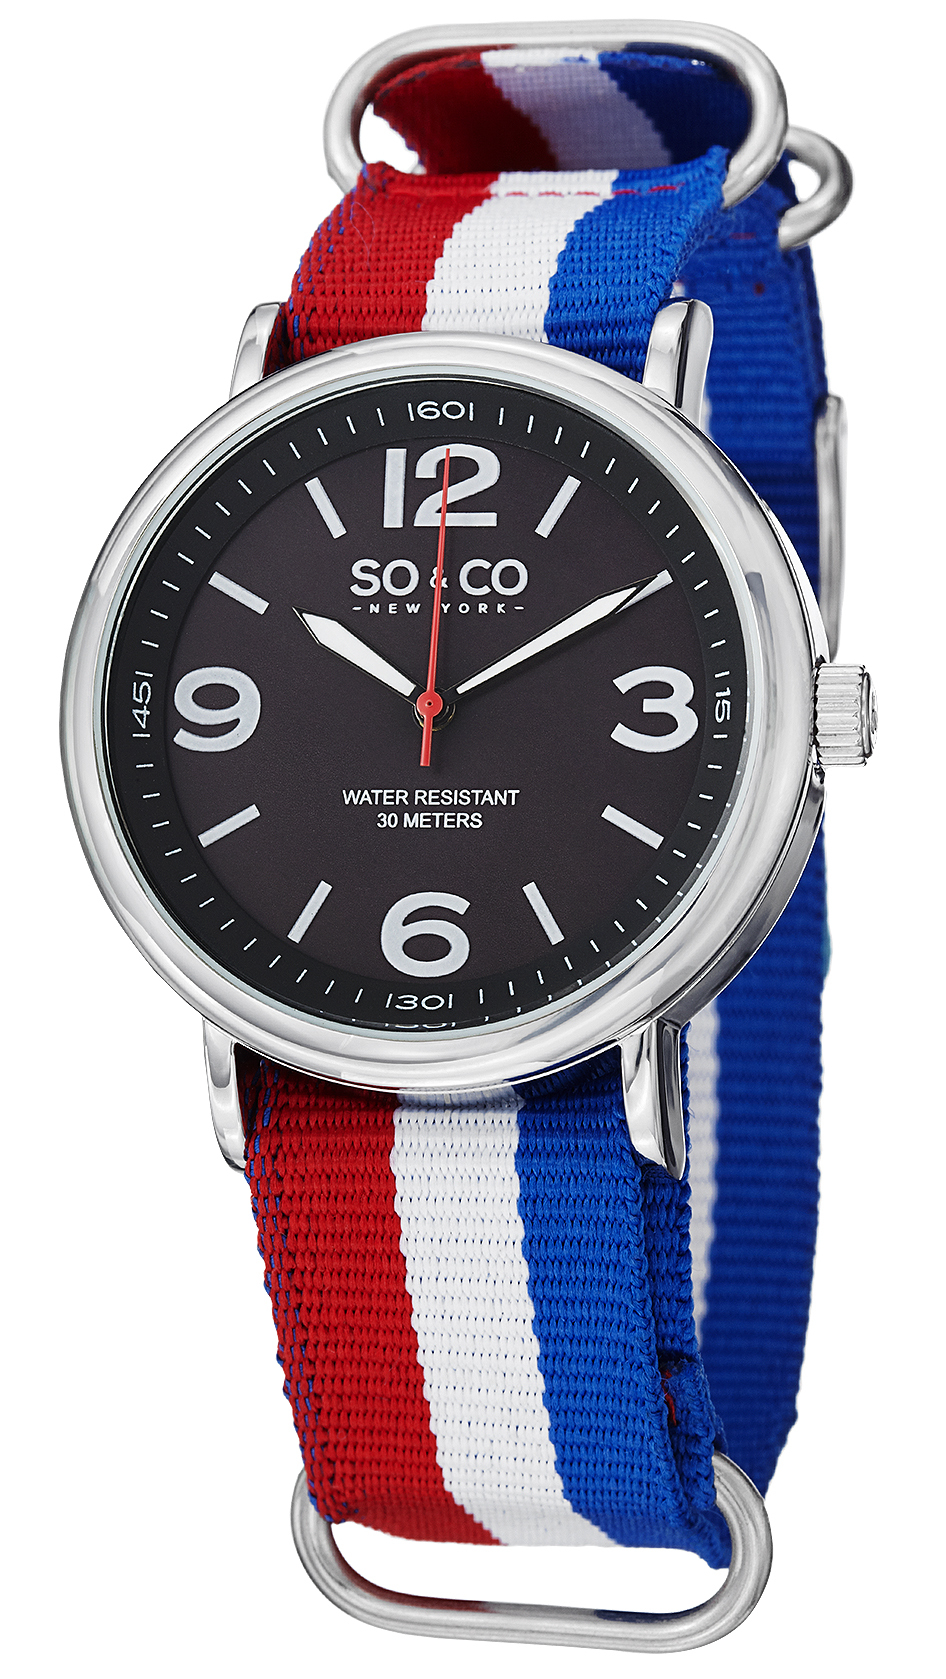 So & Co New York SoHo Herreklokke 5002.3 Sort/Stål Ø40 mm - So & Co New York